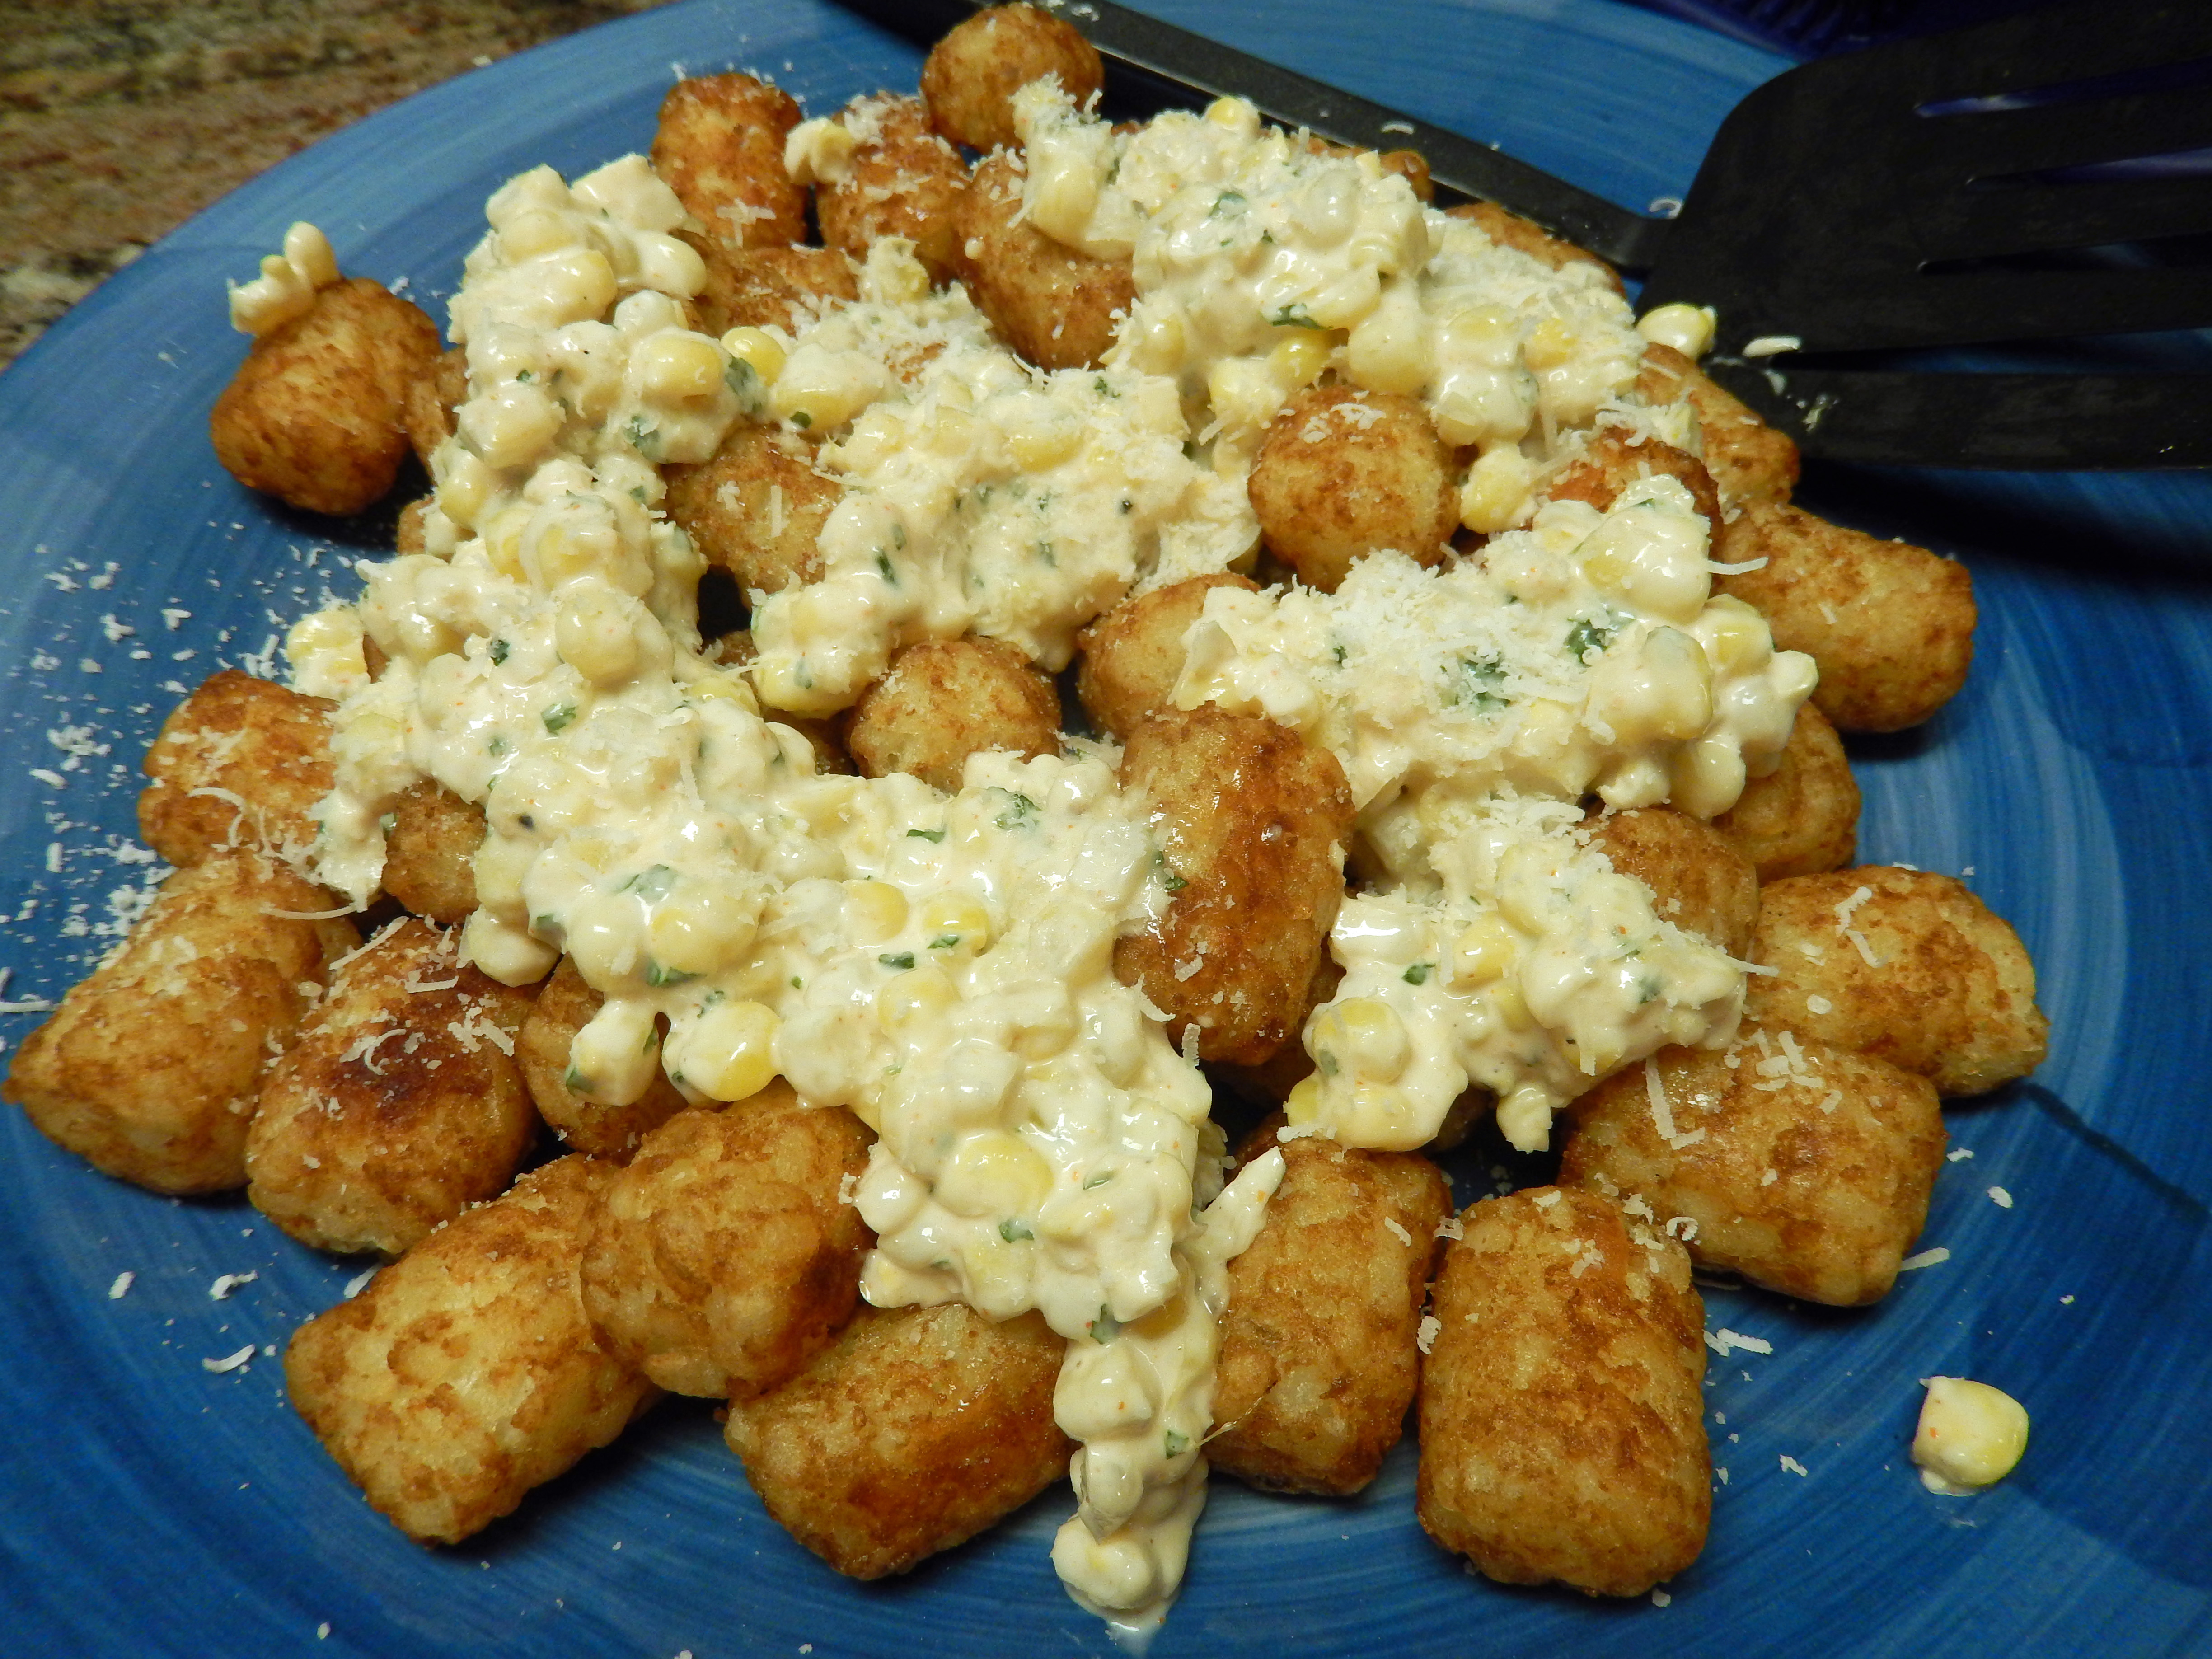 Tater tots plus spicy corn in a creamy sauce is a great side dish!